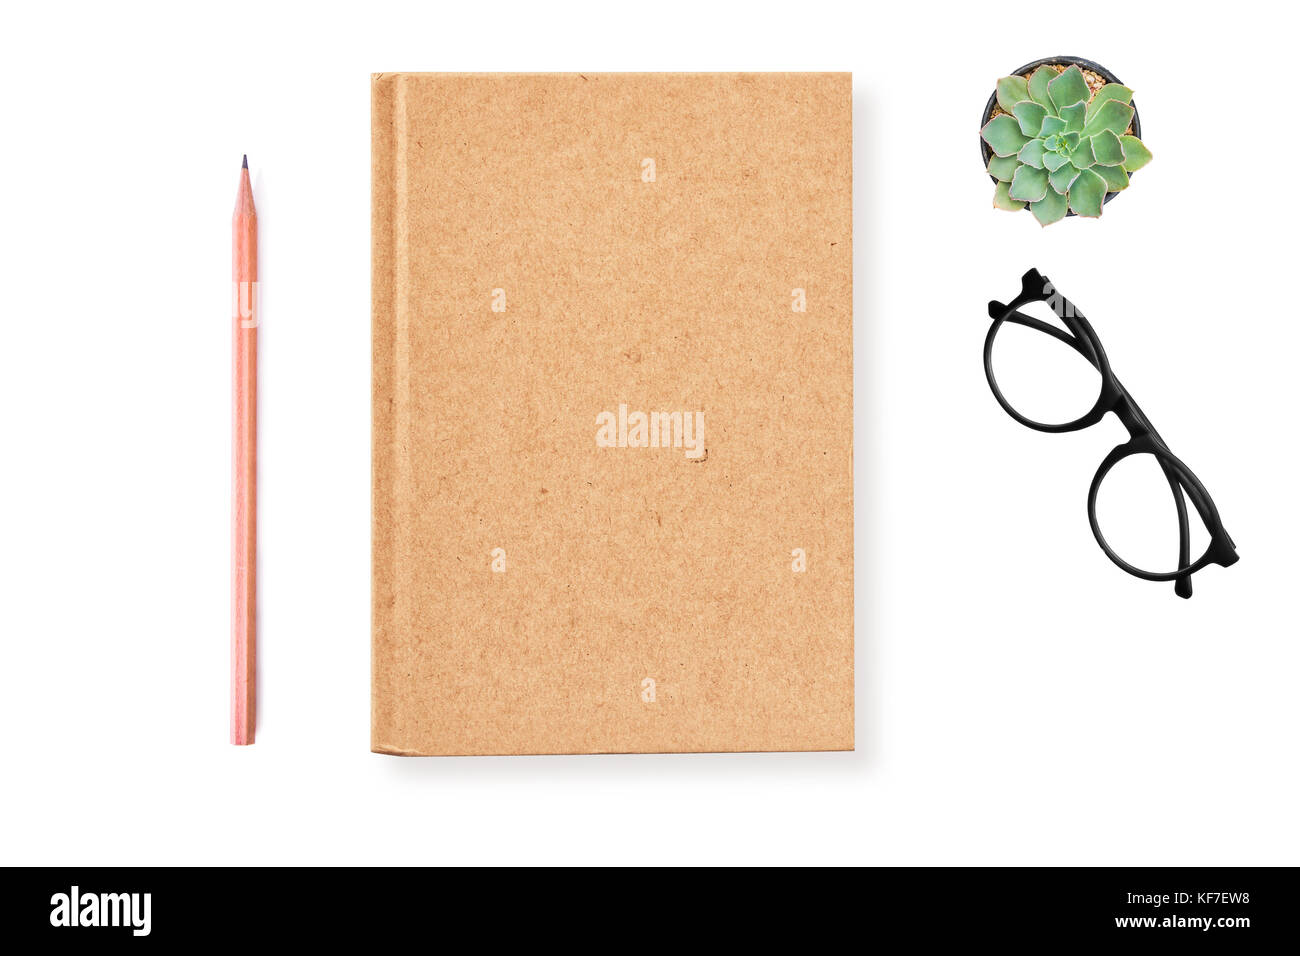 Notebook Cover Background : Notebook white background blank stock photos